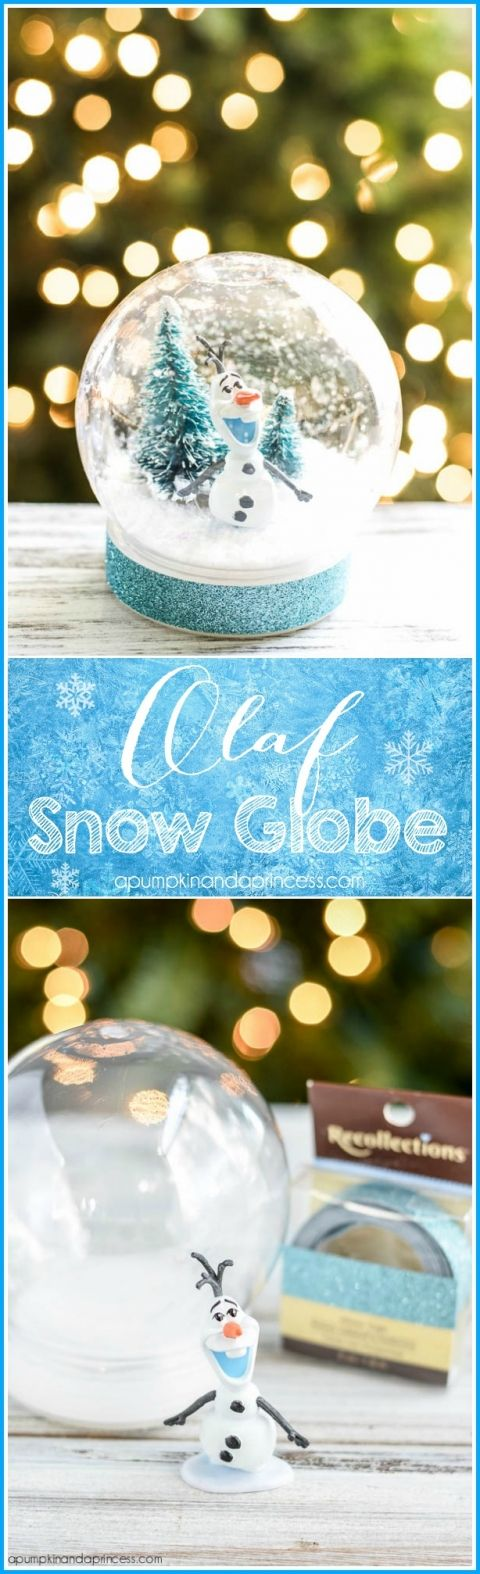 DIY Disney Frozen Olaf Snow Globe - kids will love this handmade waterless snow globe made with faux snow and Olaf toy.